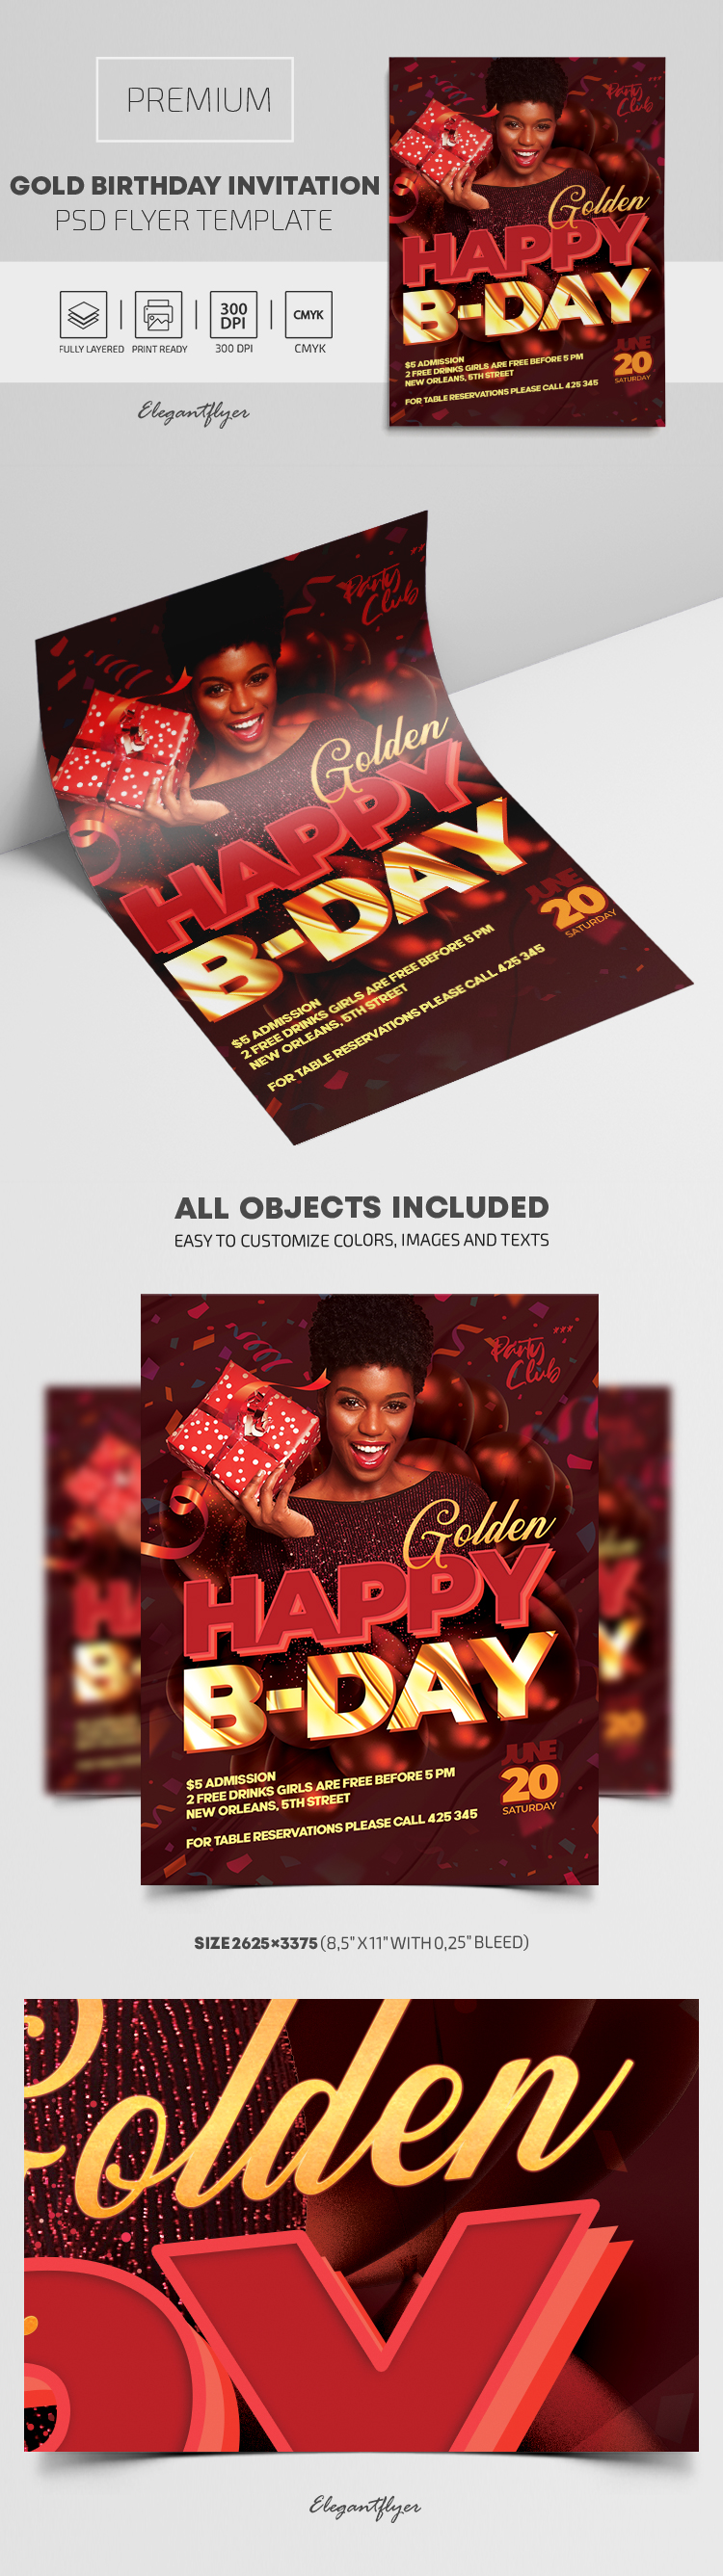 Gold Birthday Invitation PSD Template